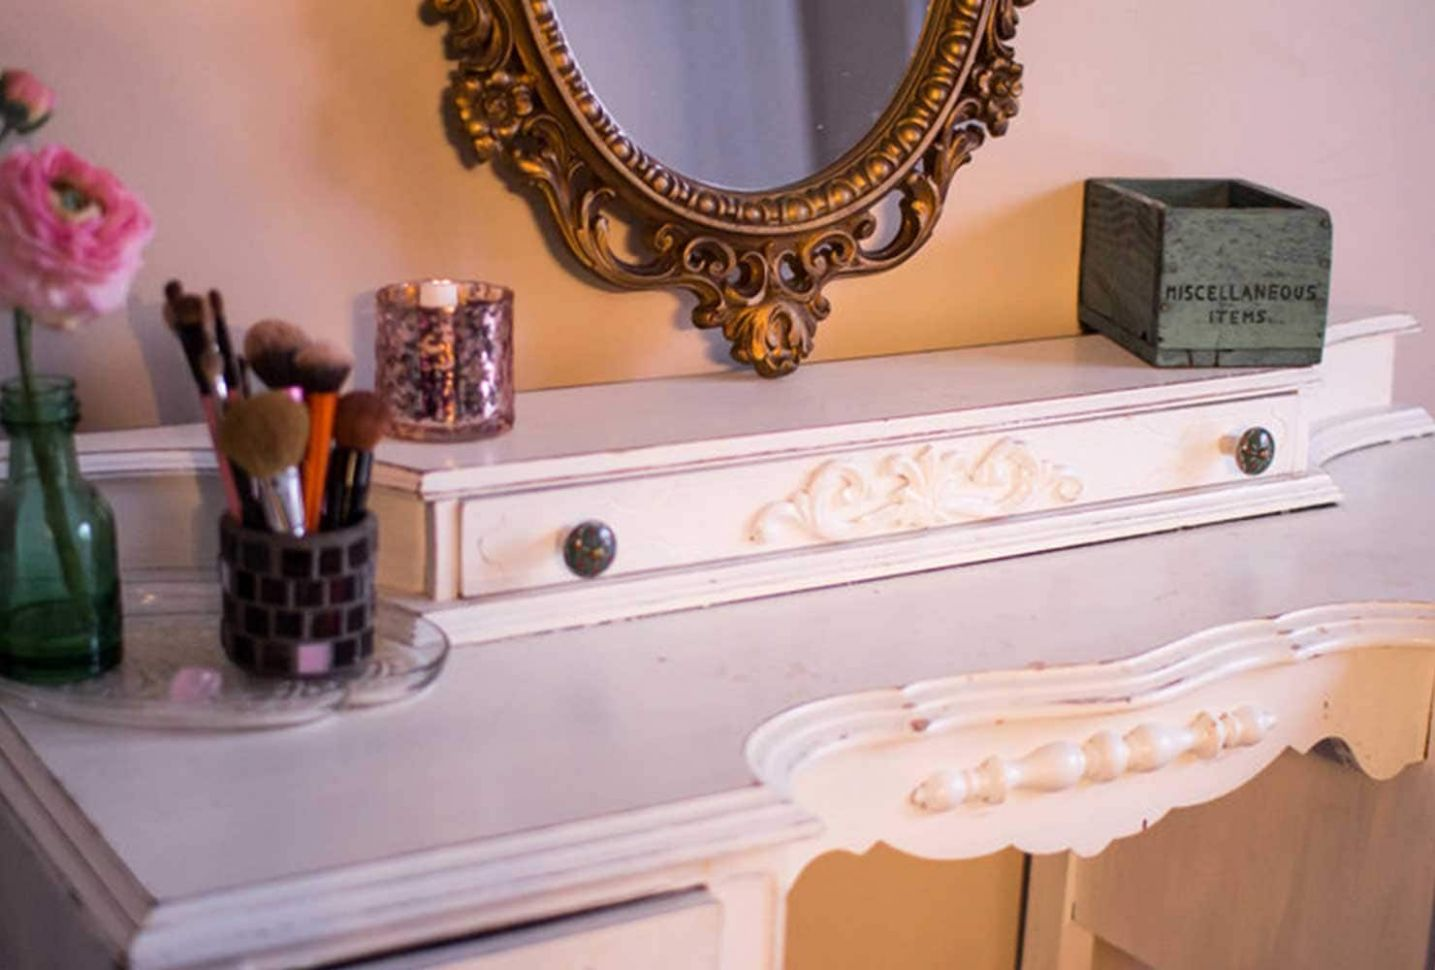 12 Makeup Room Ideas To Brighten Your Morning Routine | Shutterfly